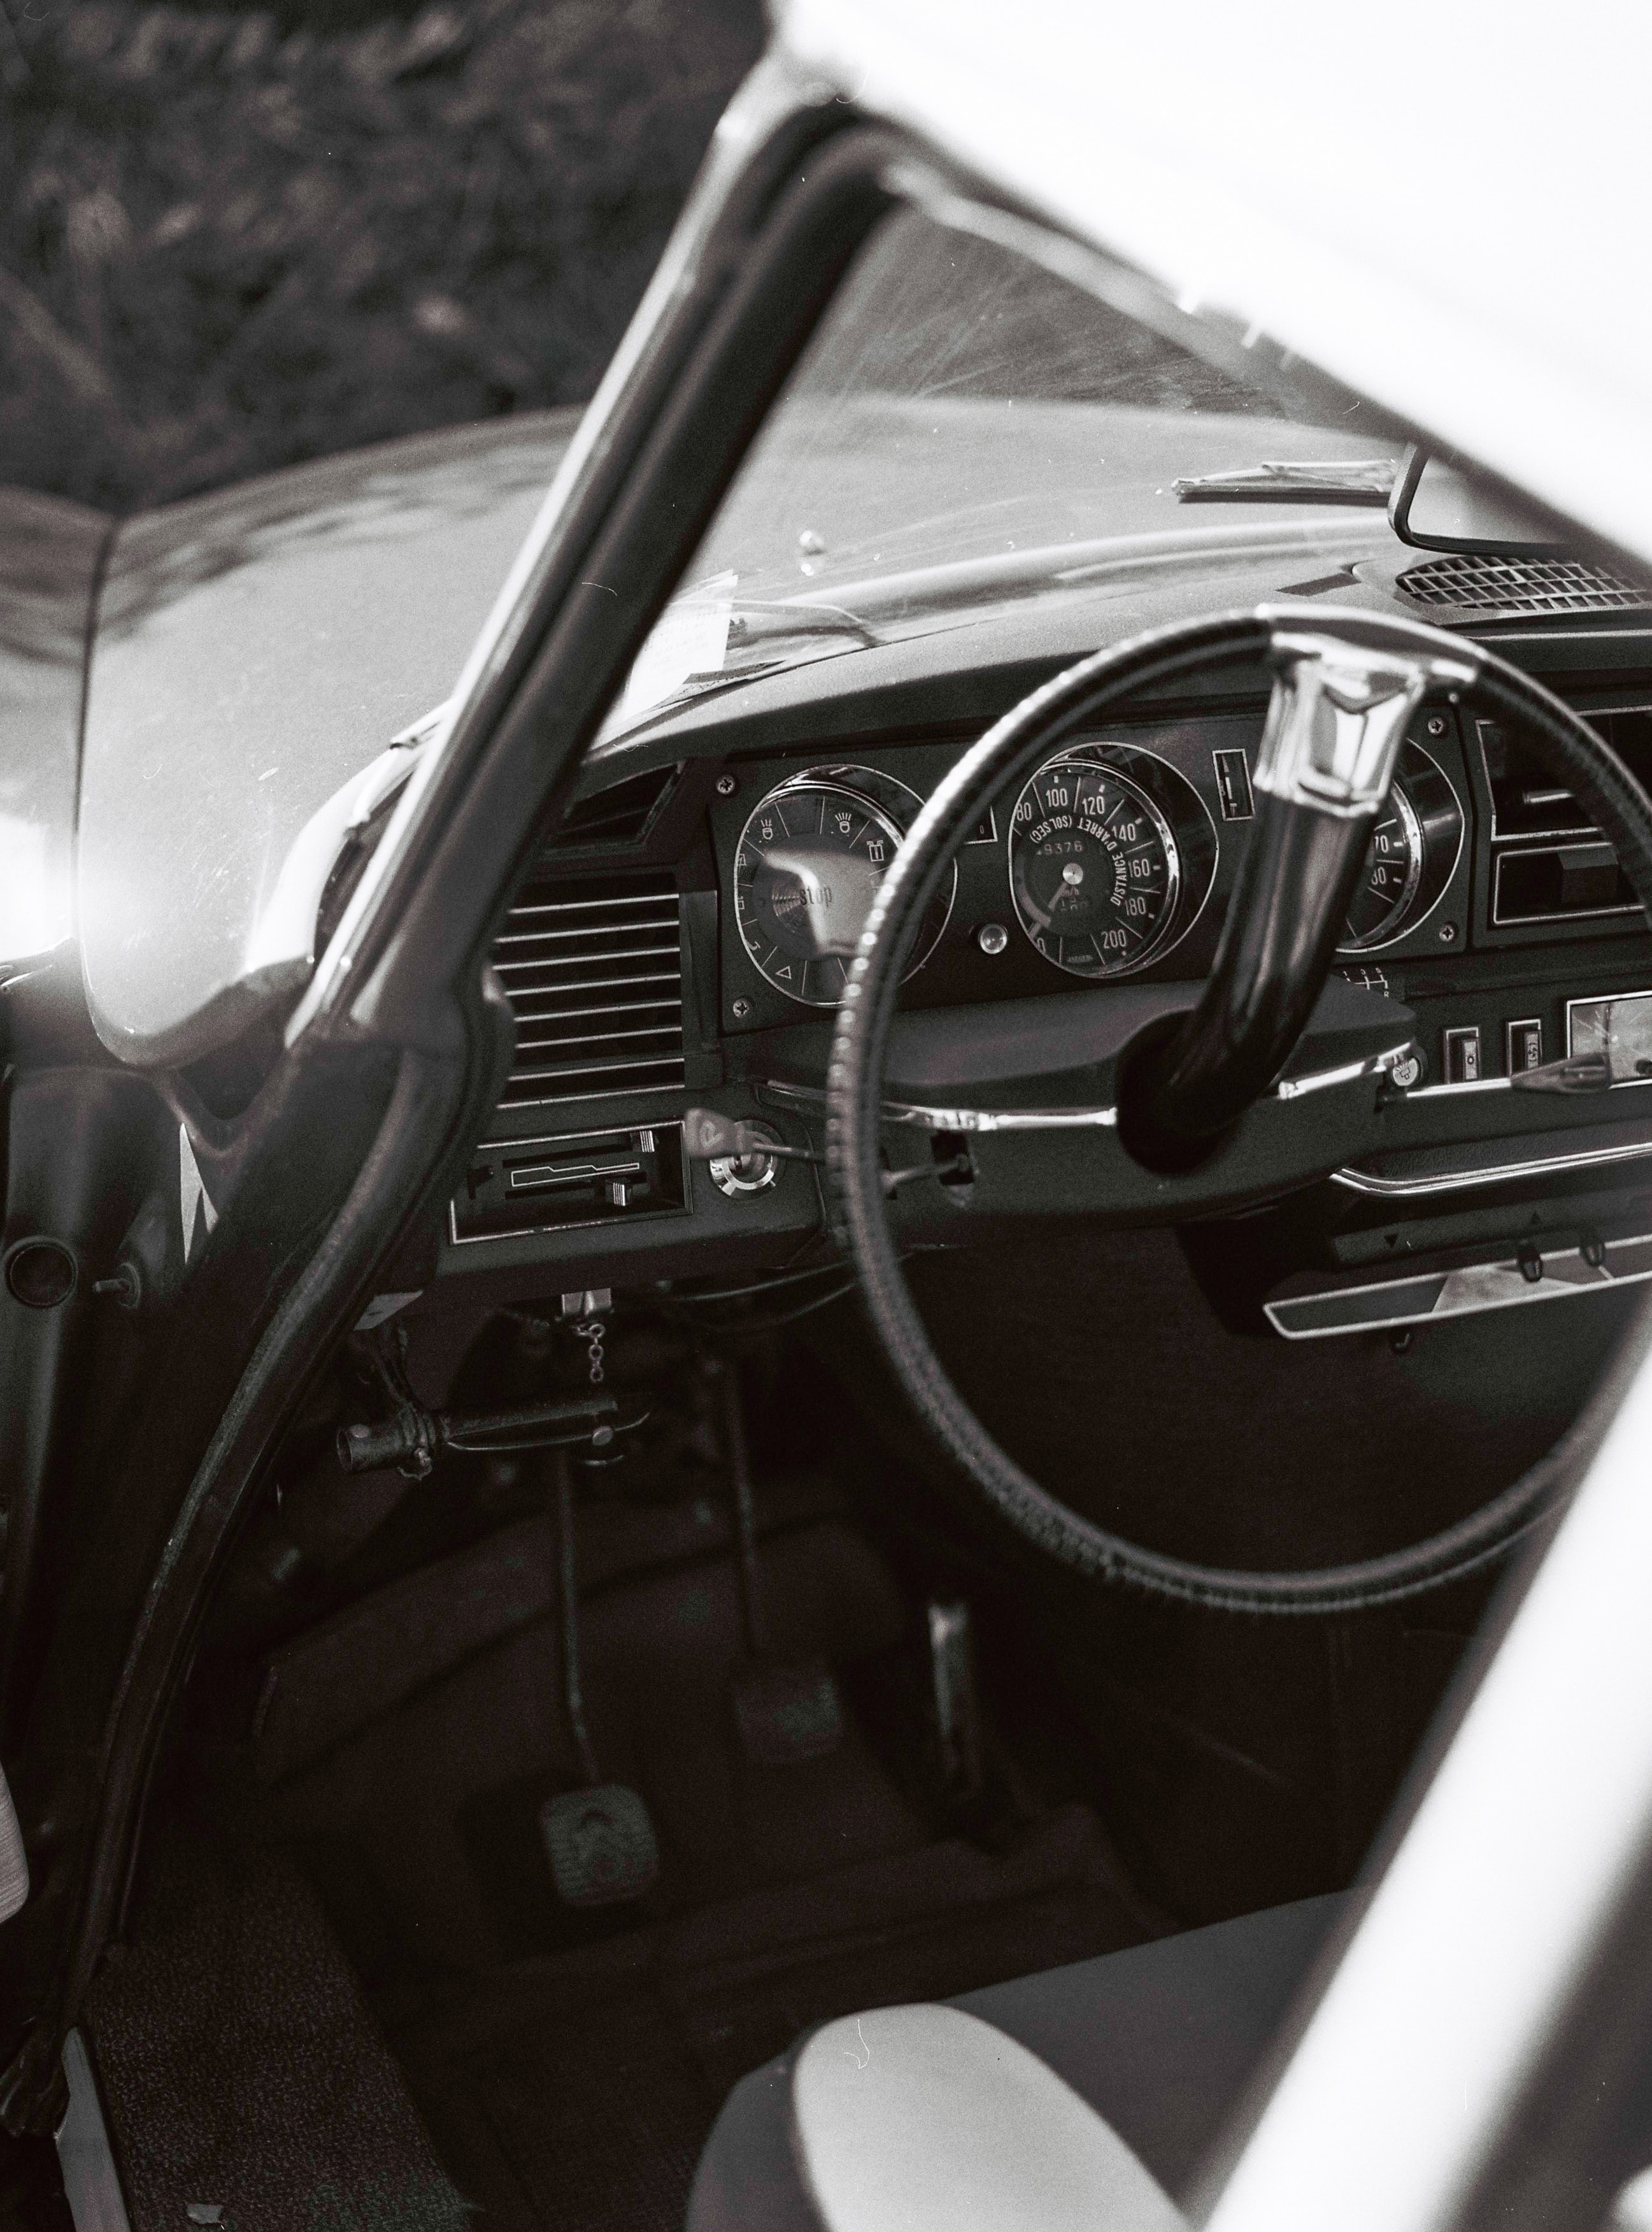 grayscale photo of a vehicle steering wheel